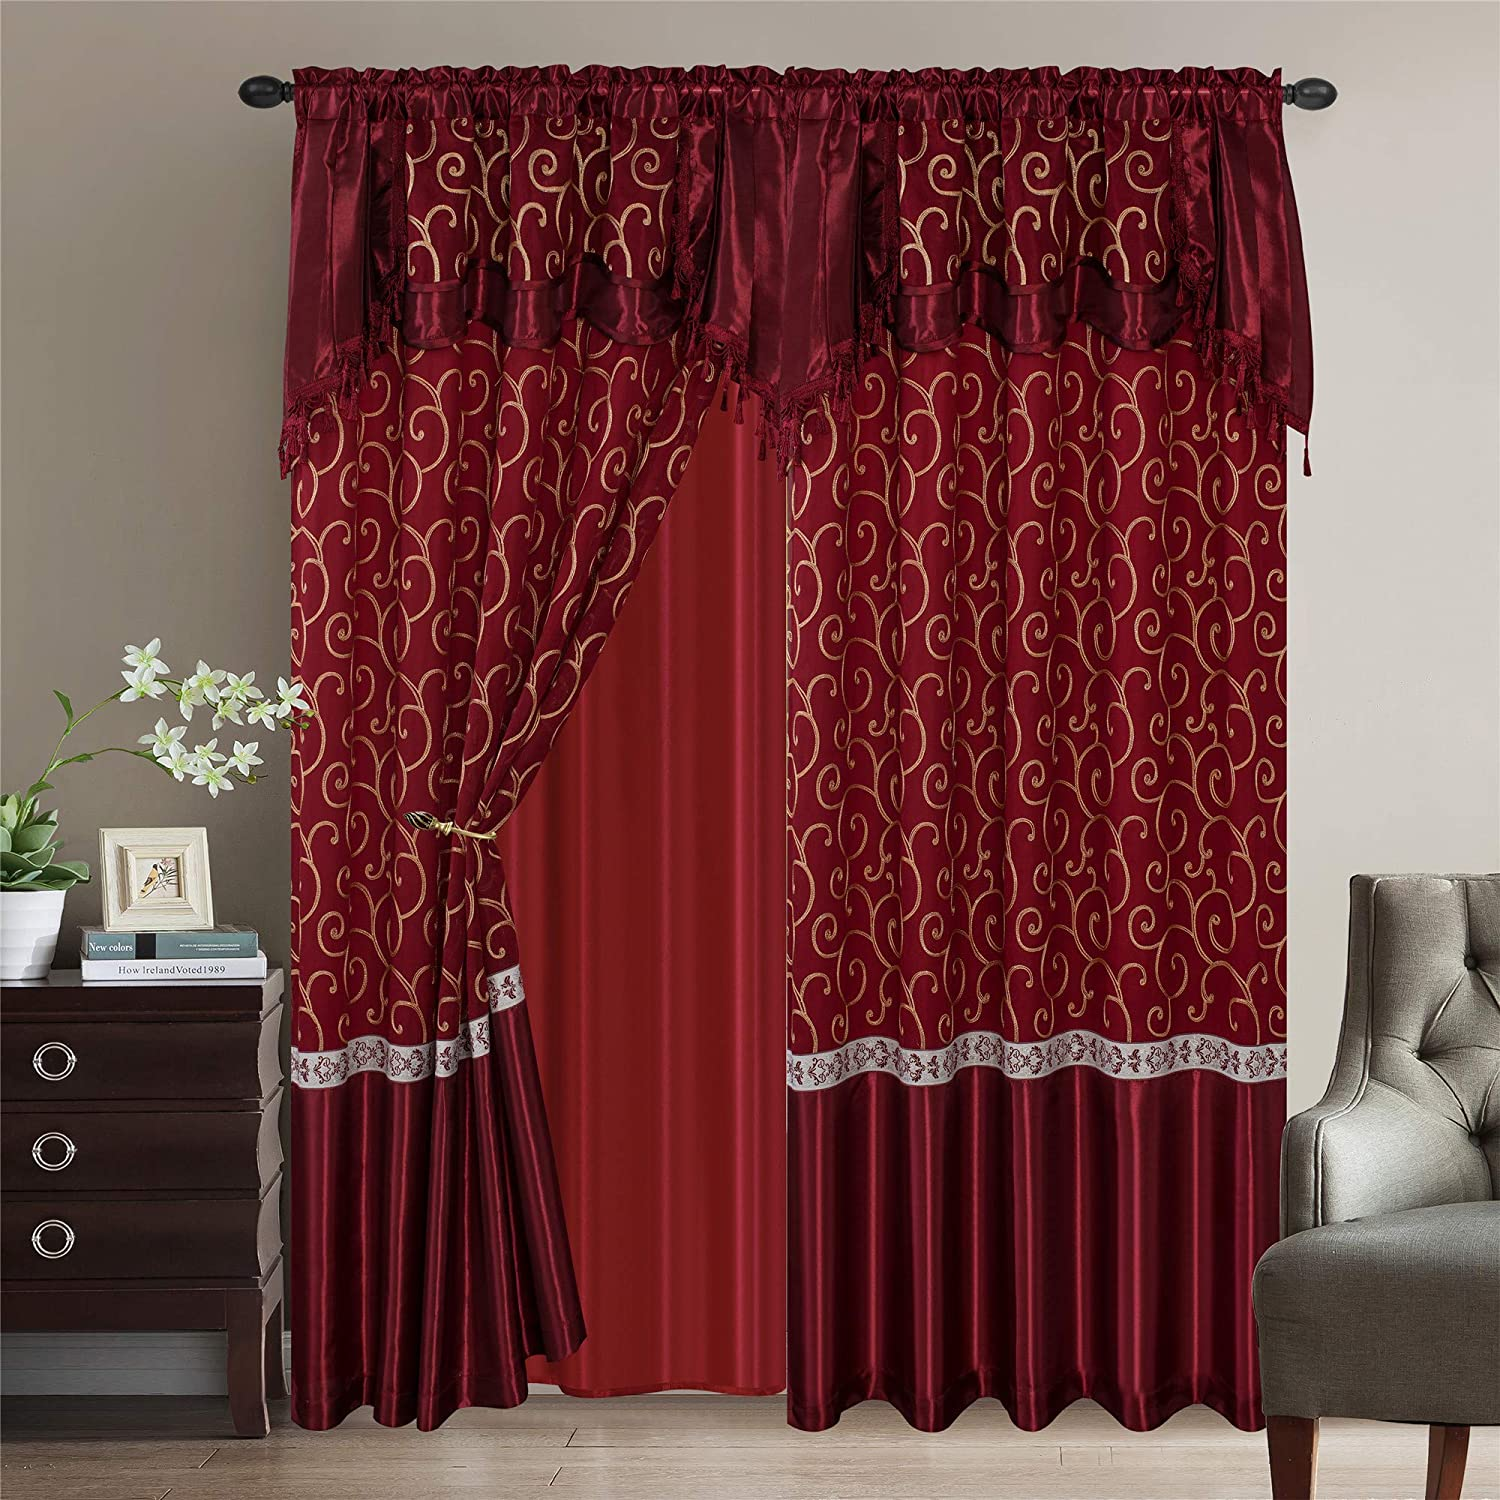 Luxury Home Collection 2 Panel Embroidered Curtain Set with Attached Valance and Sheer Backing 55